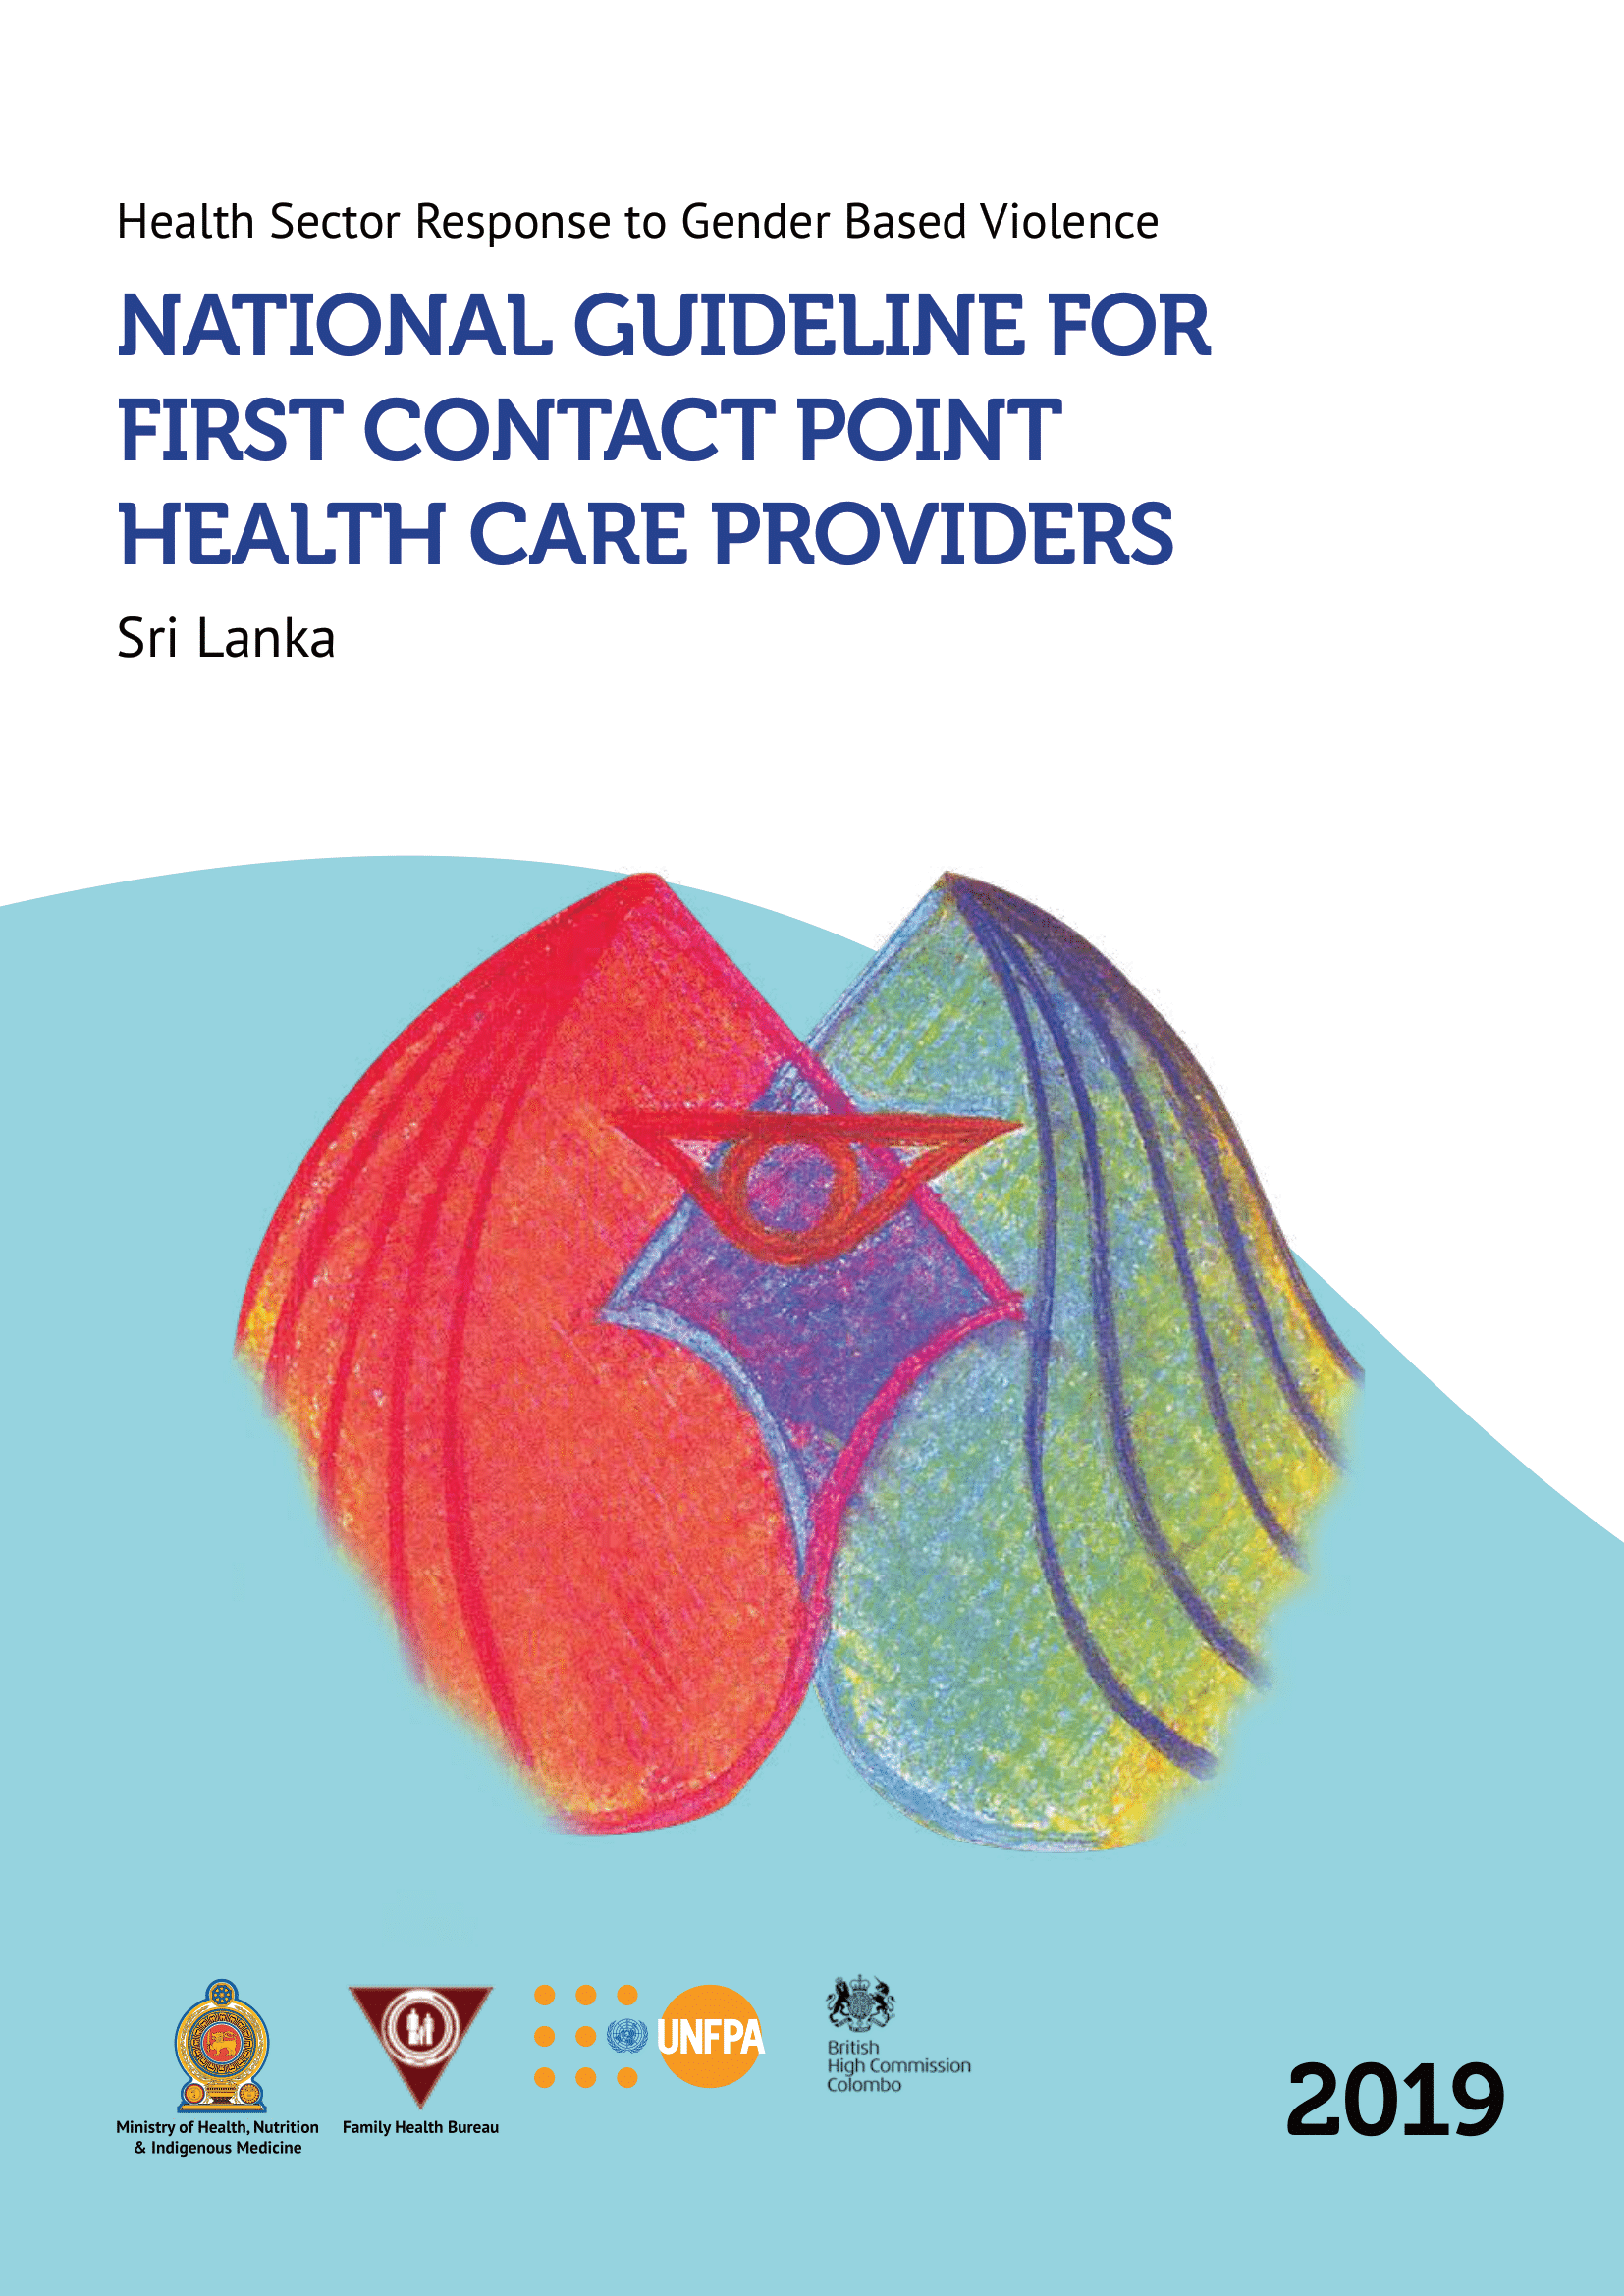 Health Sector Response to Gender Based Violence: National Guideline for First Contact Point Health Care Providers